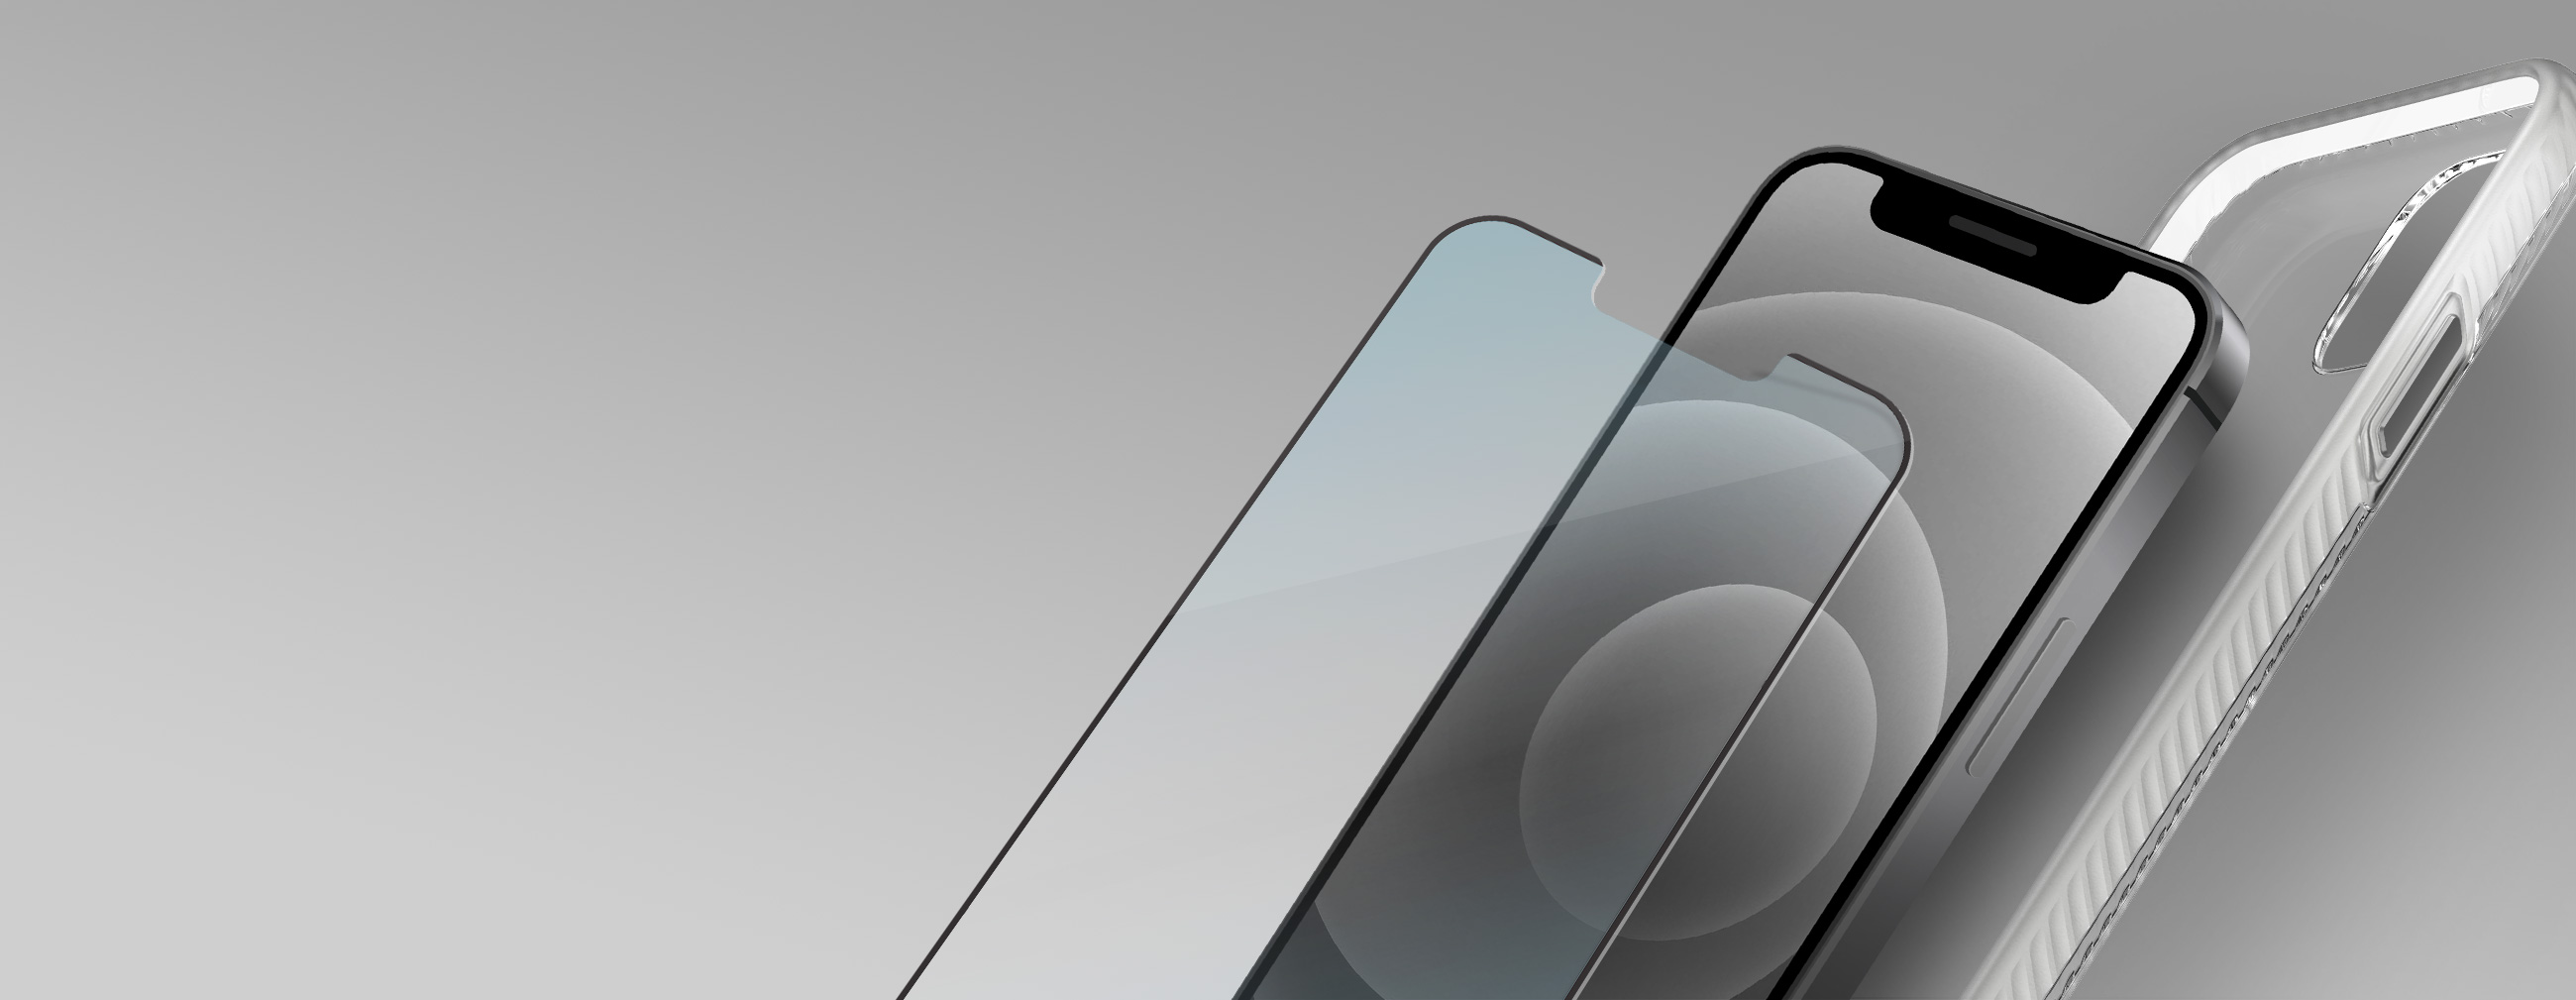 iphone 13 banner image 3